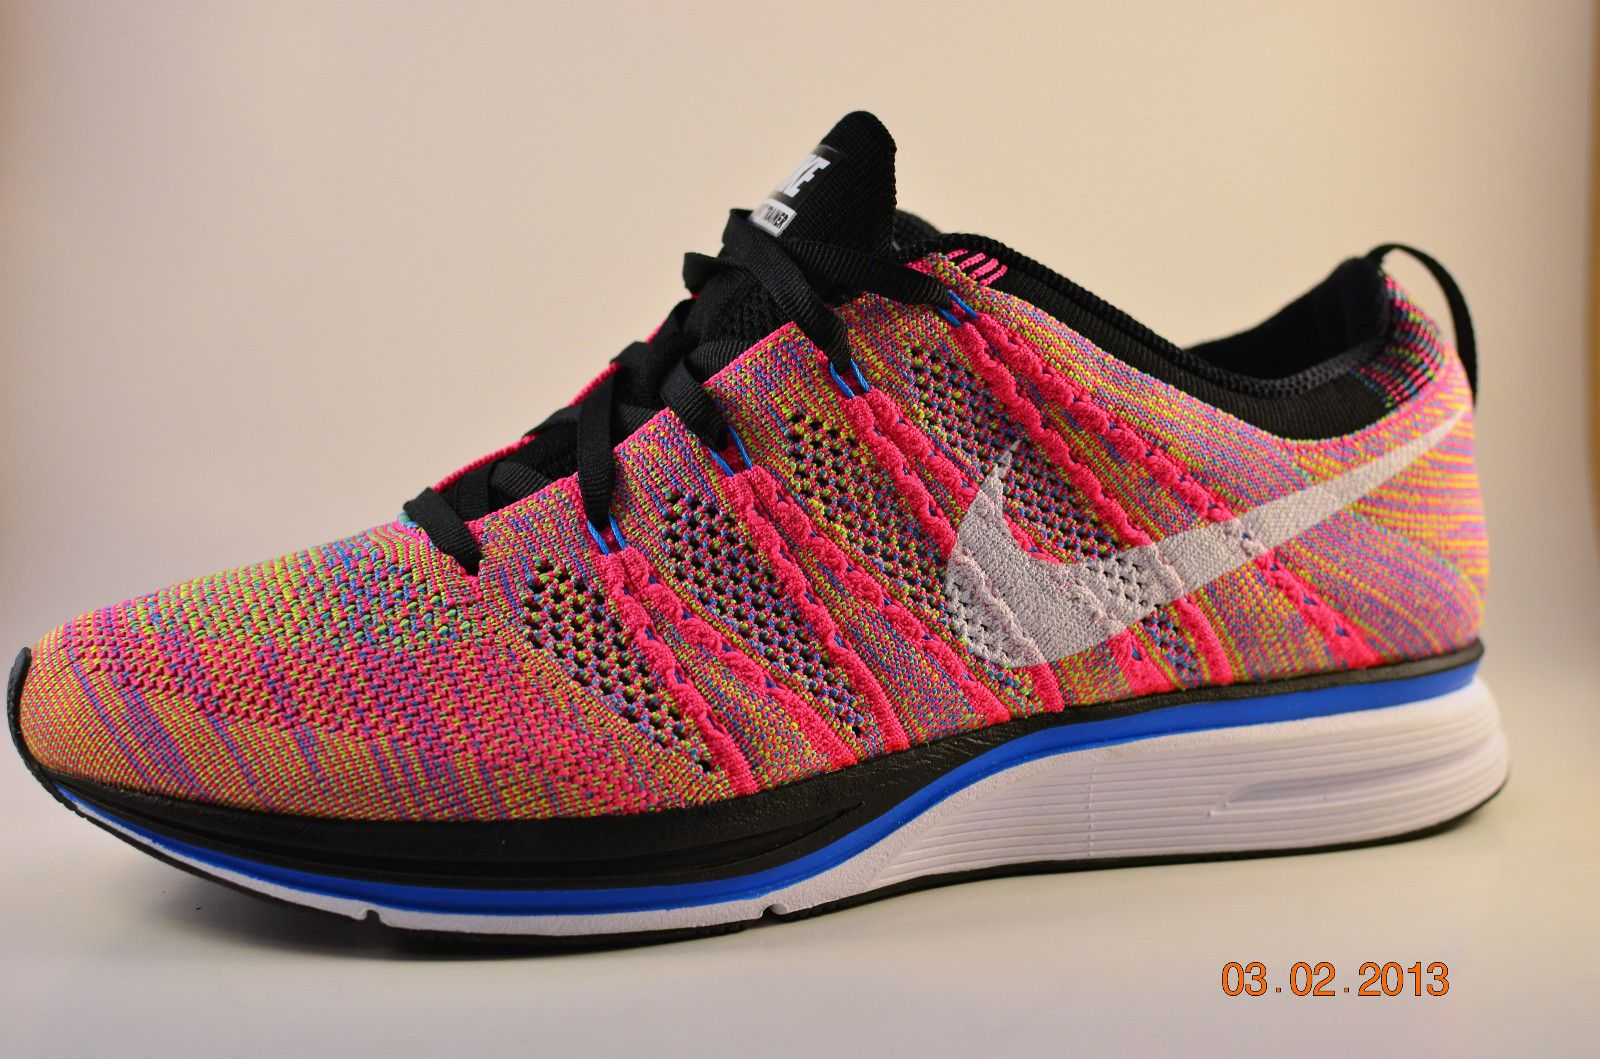 Nike Flyknit Trainer - Multicolor Sample | coolest shoe I ...